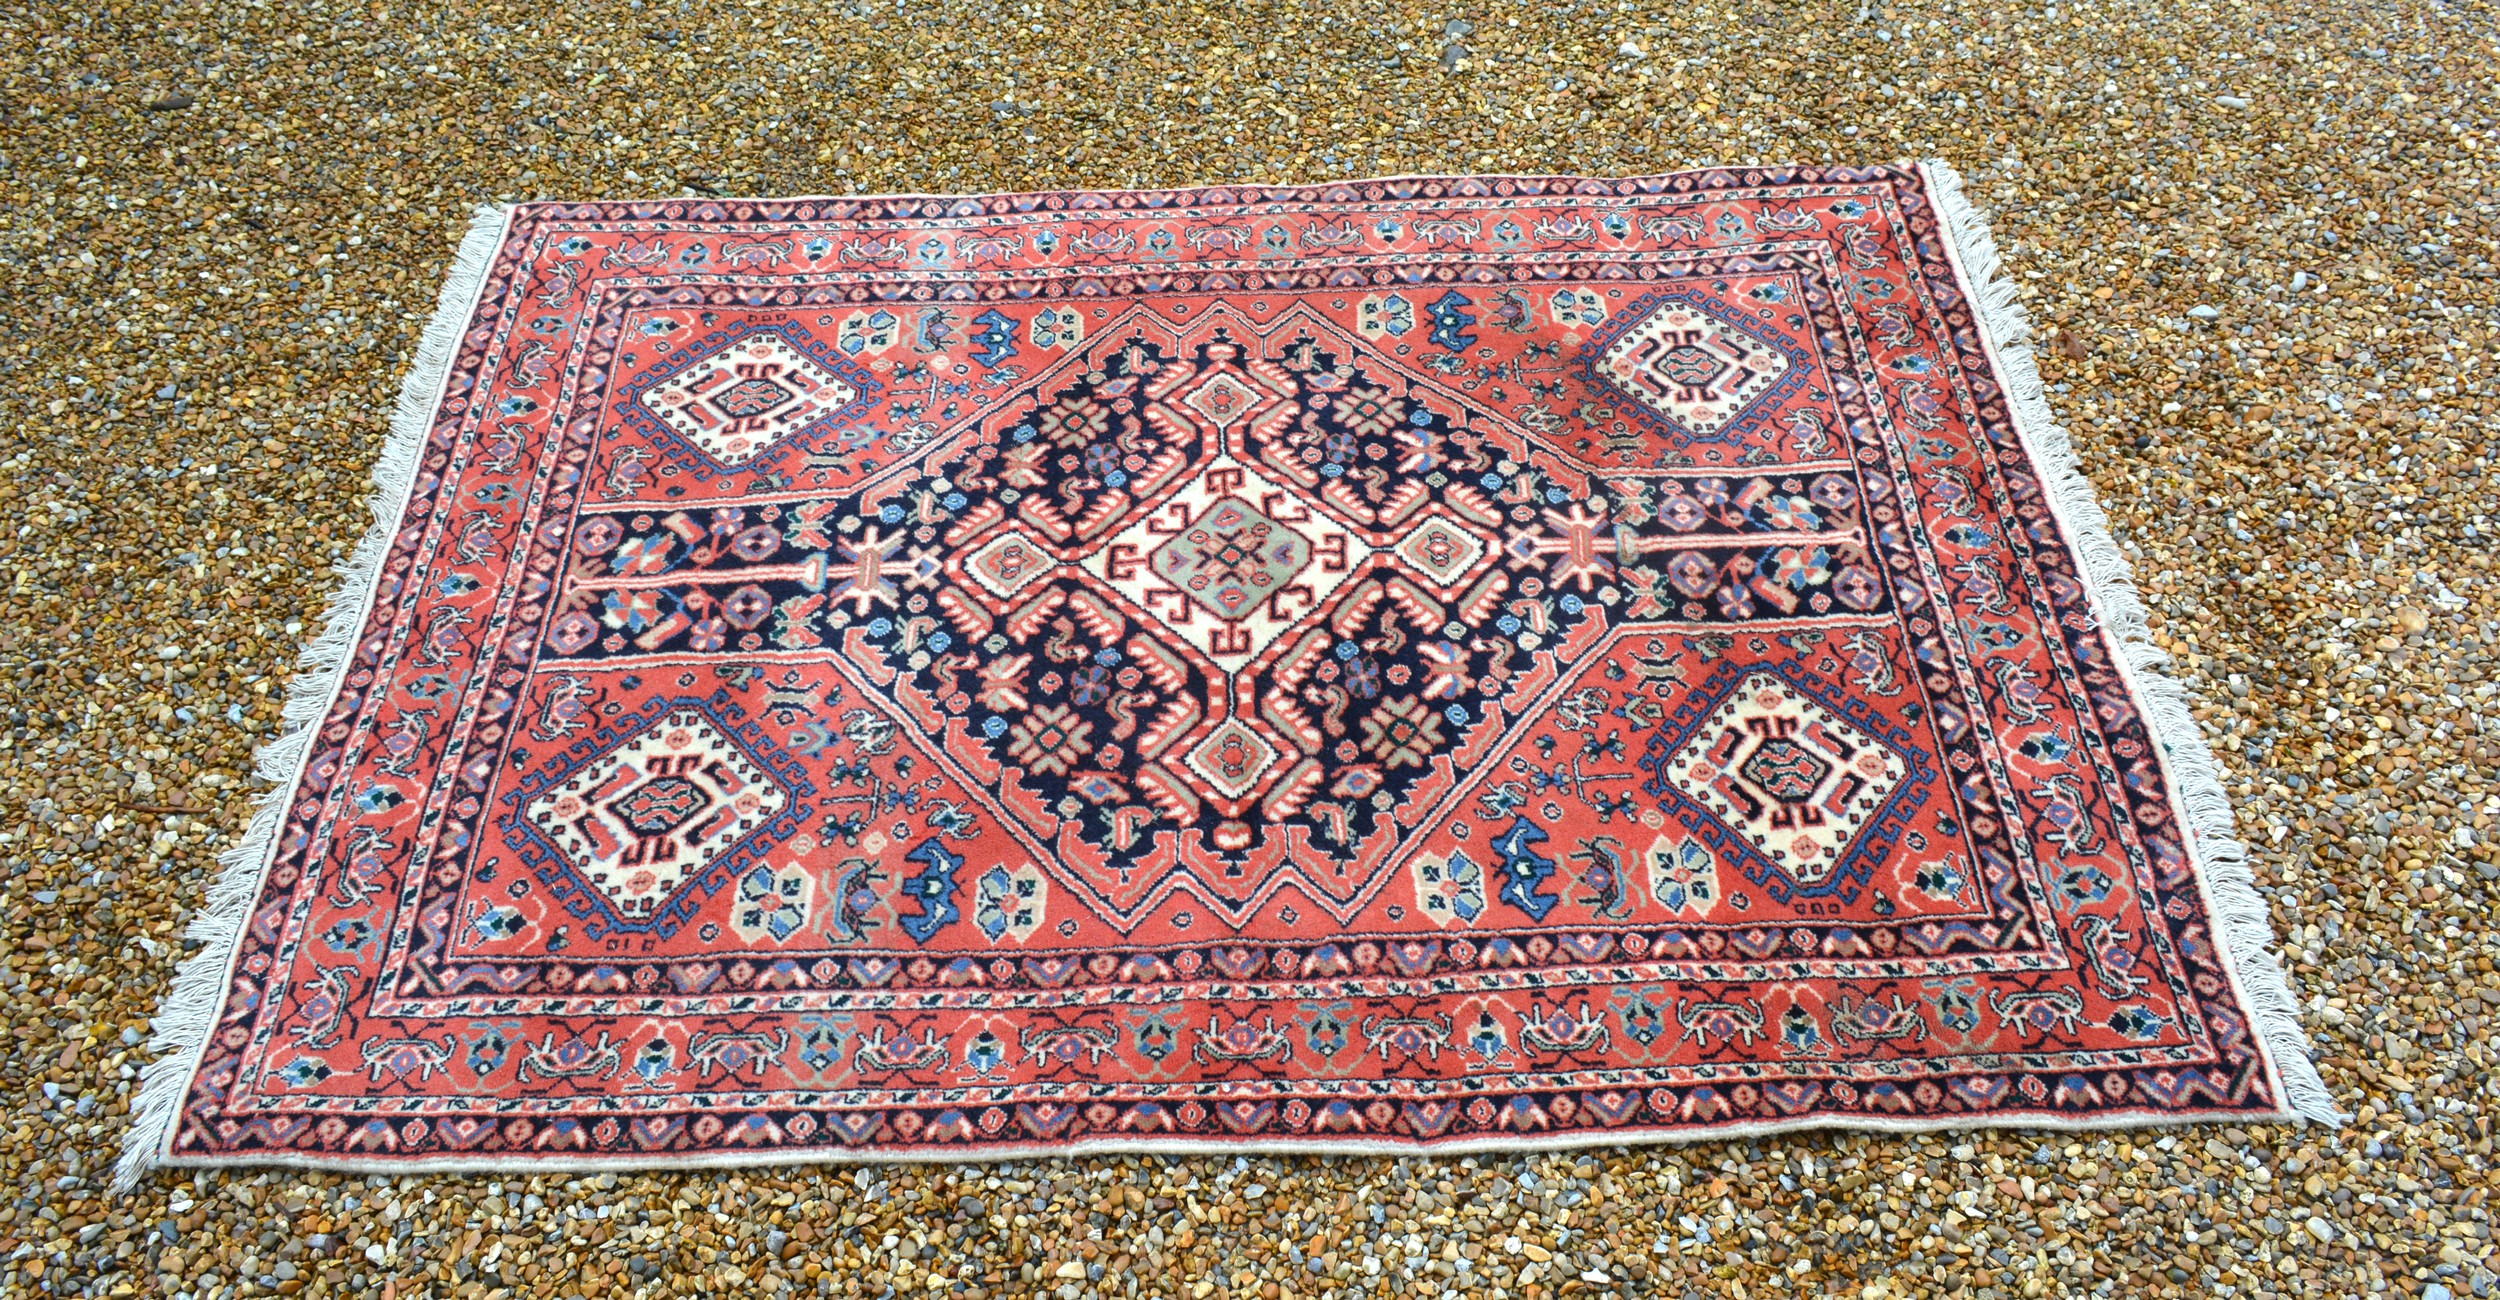 A North West Persian woollen rug with a central medallion within an all over design upon a red, blue